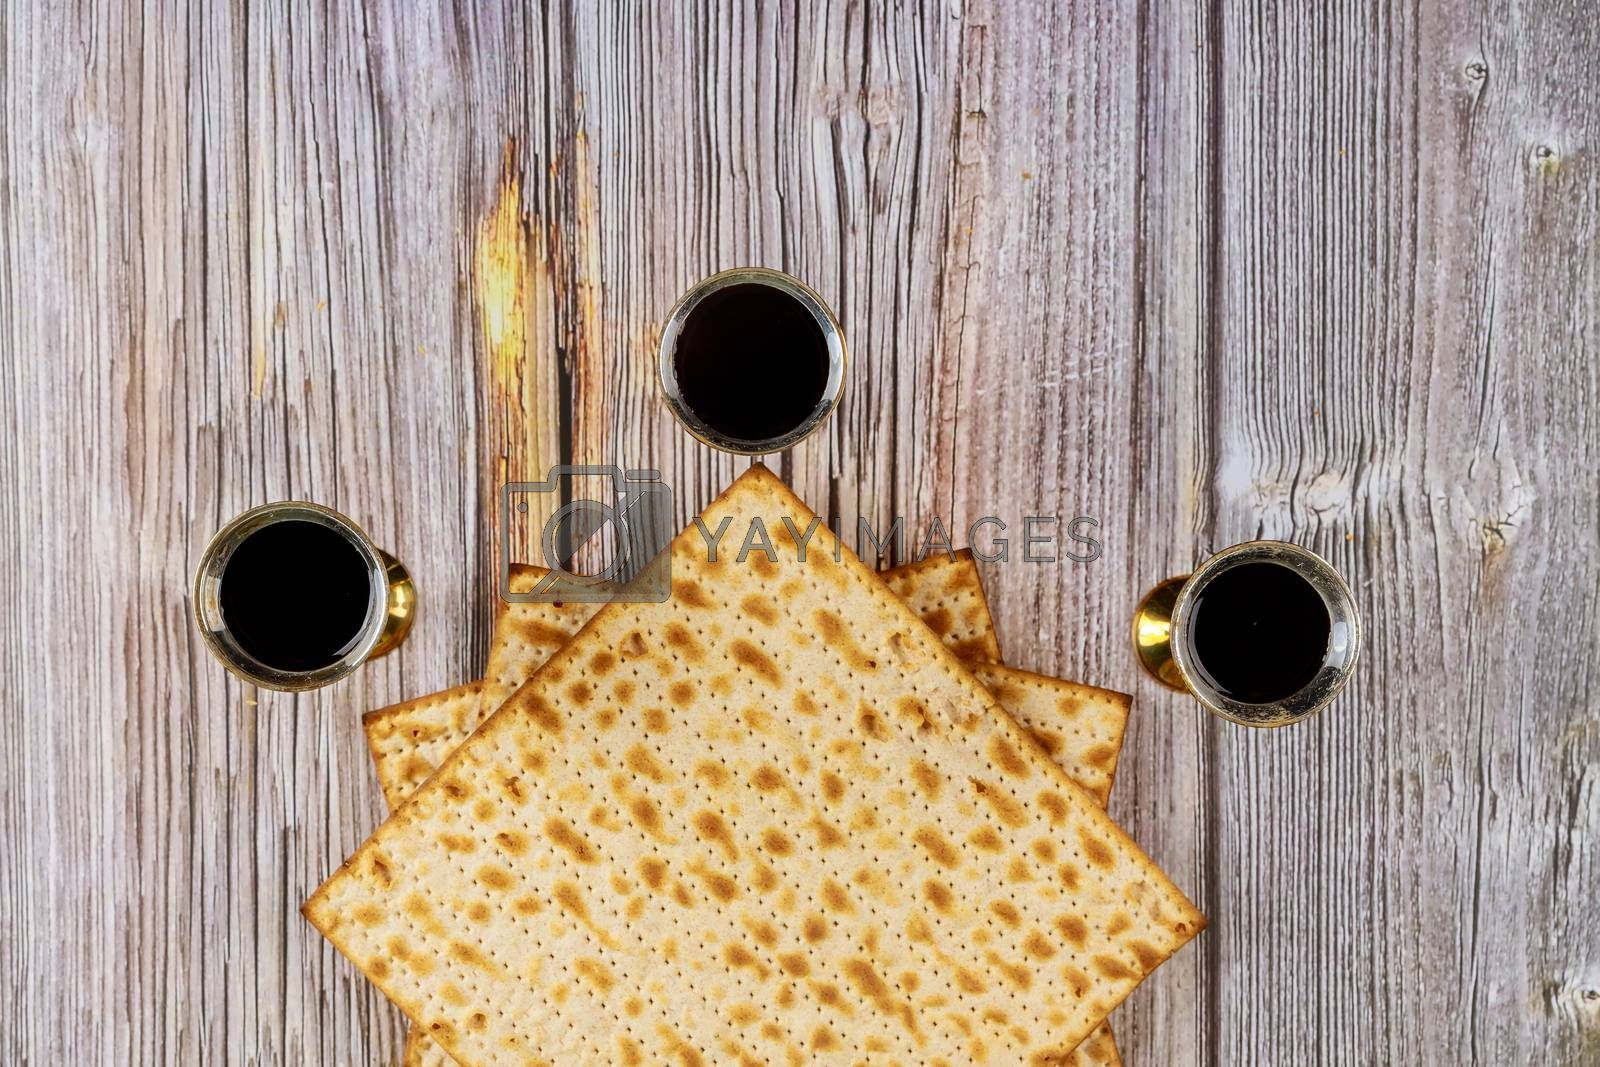 Passover matzoh jewish holiday bread and kosher wine over wooden table